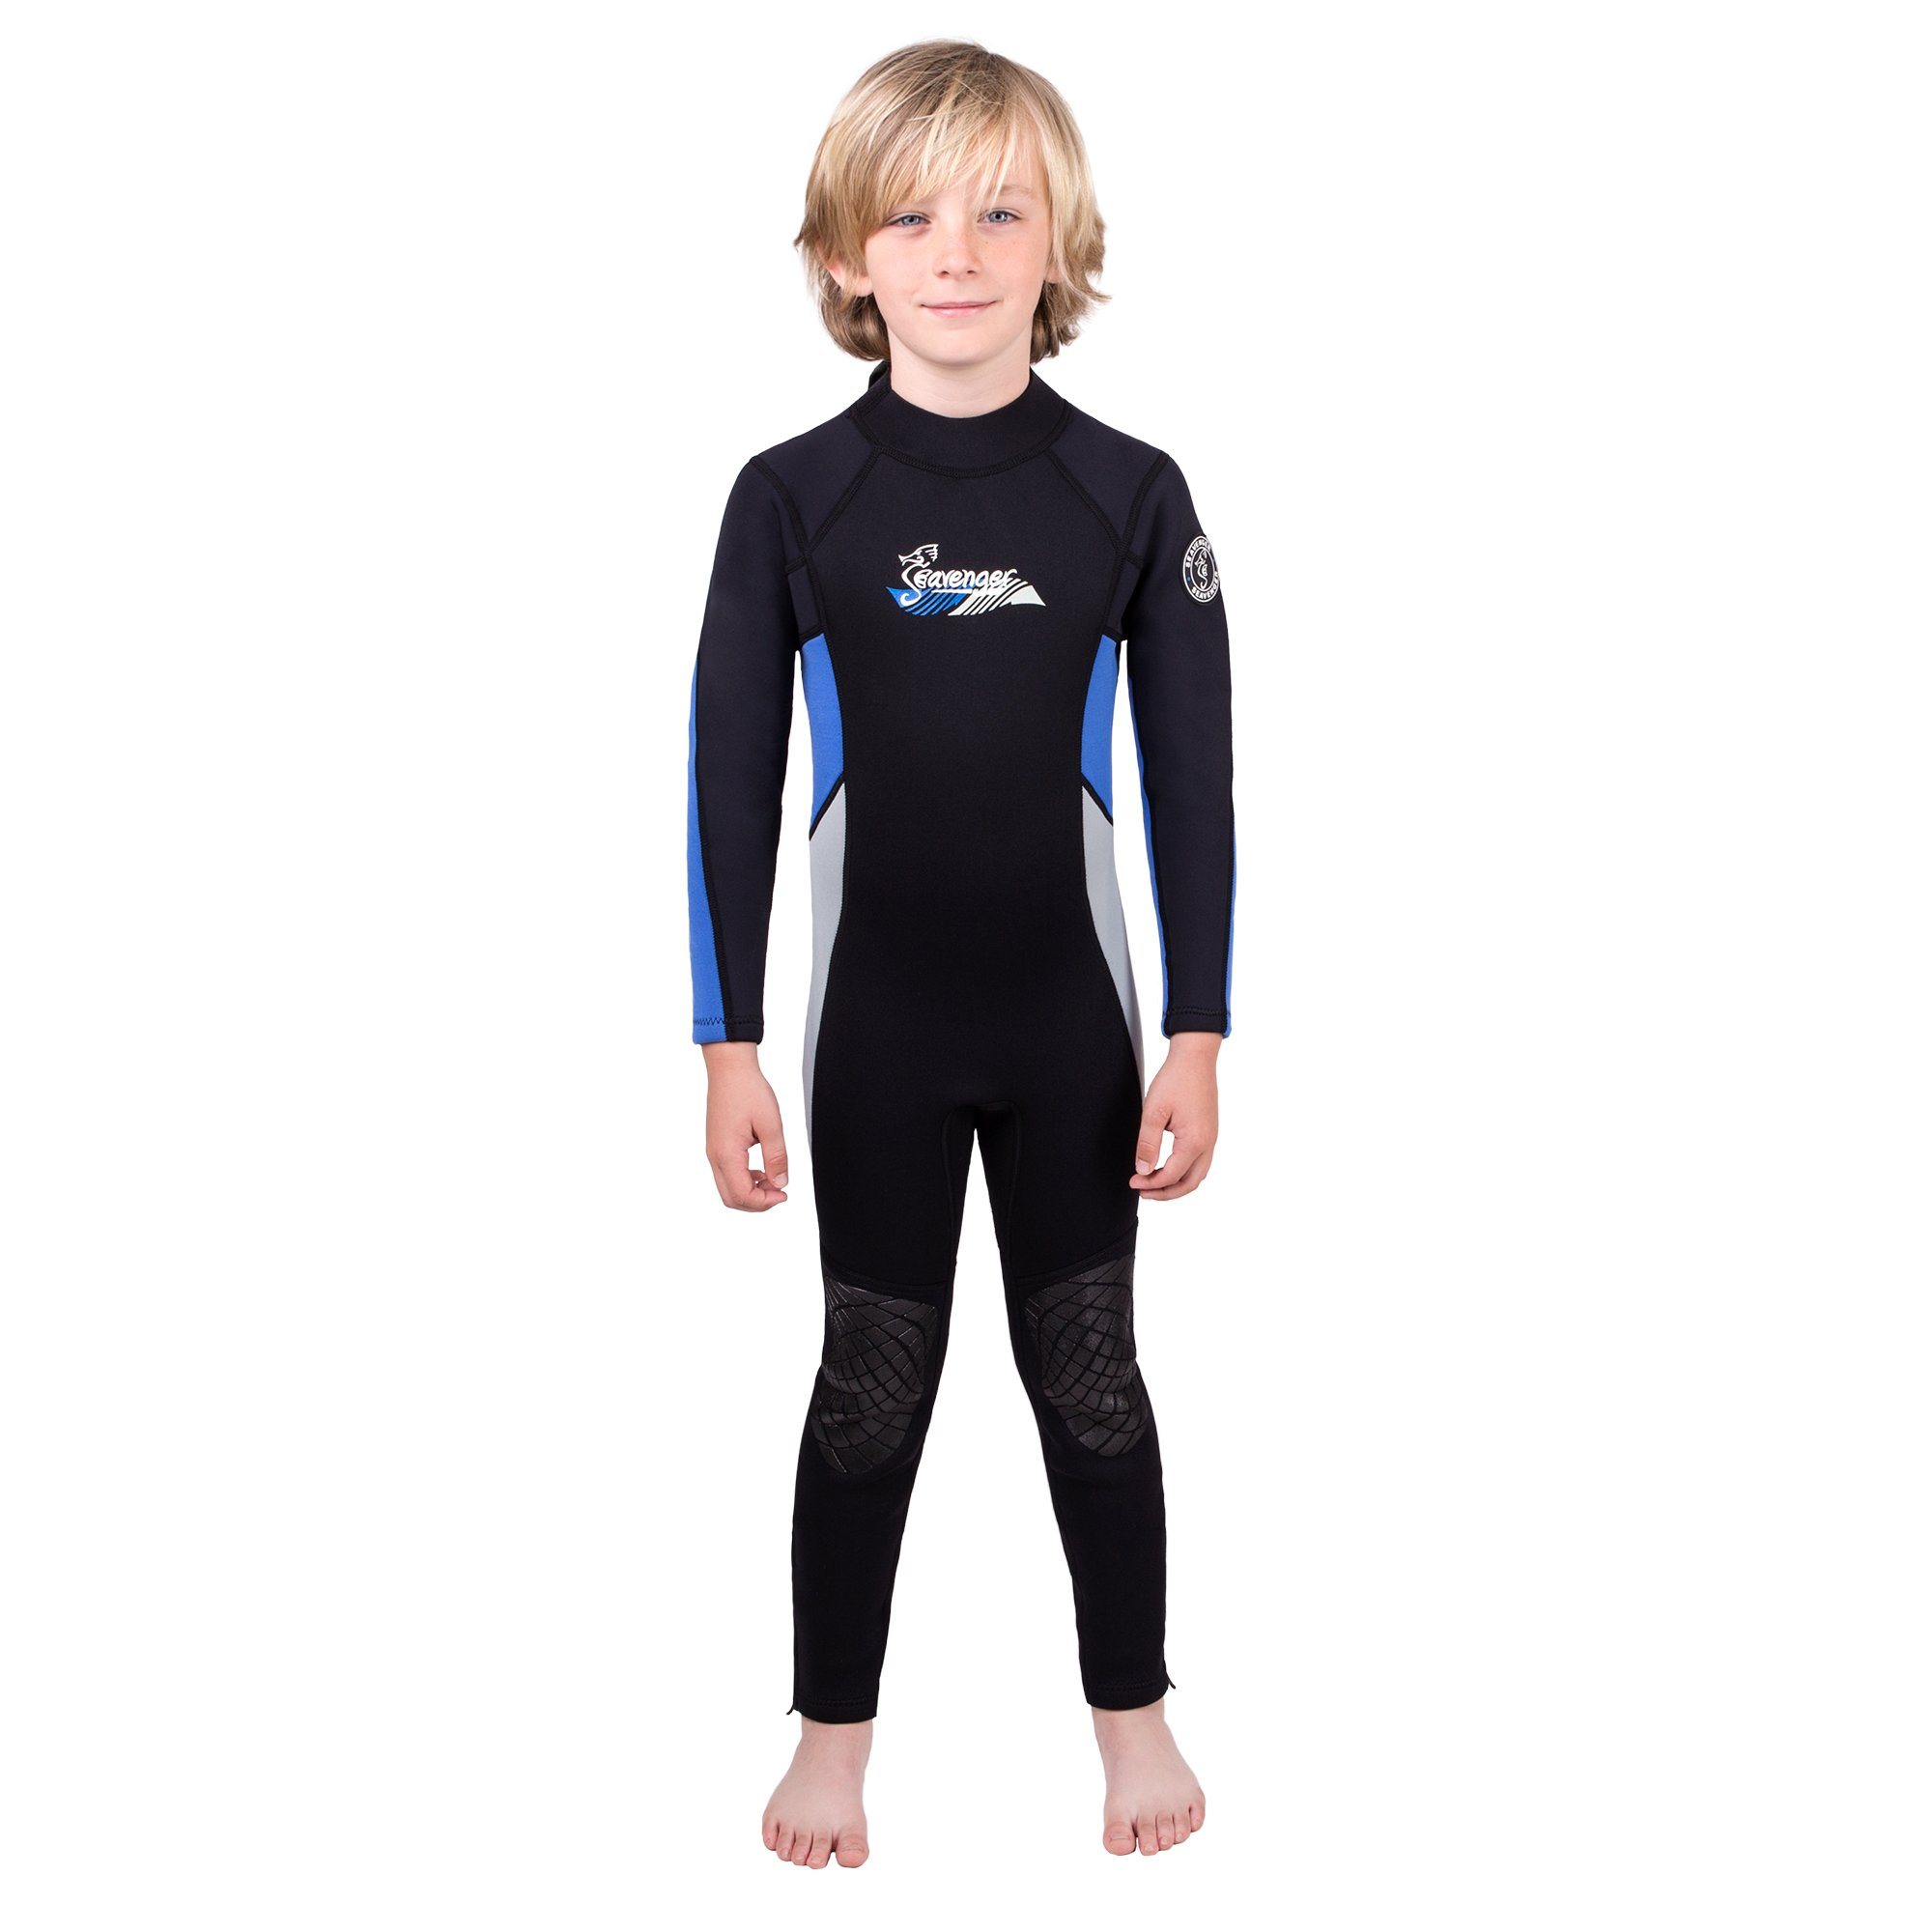 Seavenger Scout 3mm Kids Wetsuit | Full Body Neoprene Suit for Snorkeling, Swimming, Diving (Ocean Blue, 12) by Seavenger